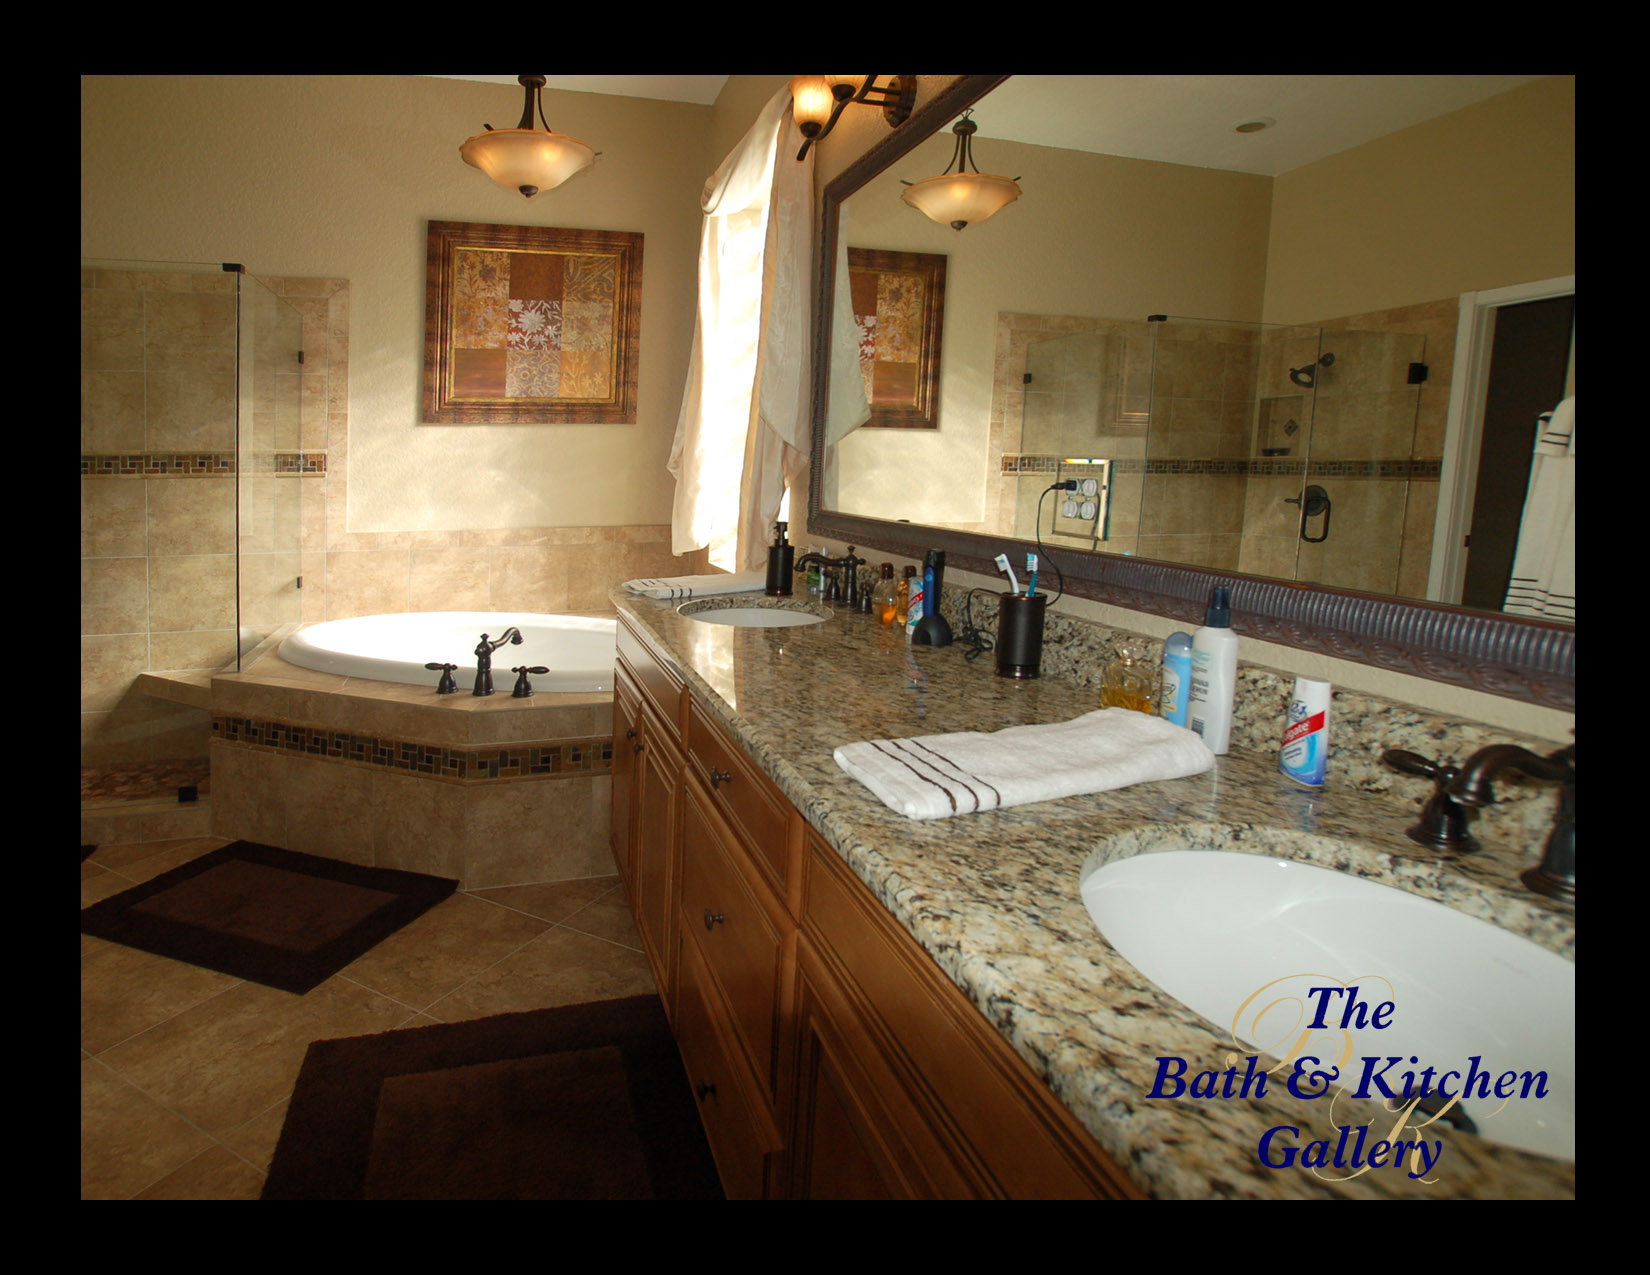 Bathroom remodeling gallery tampa bathroom remodeling for Bathroom renovation tampa